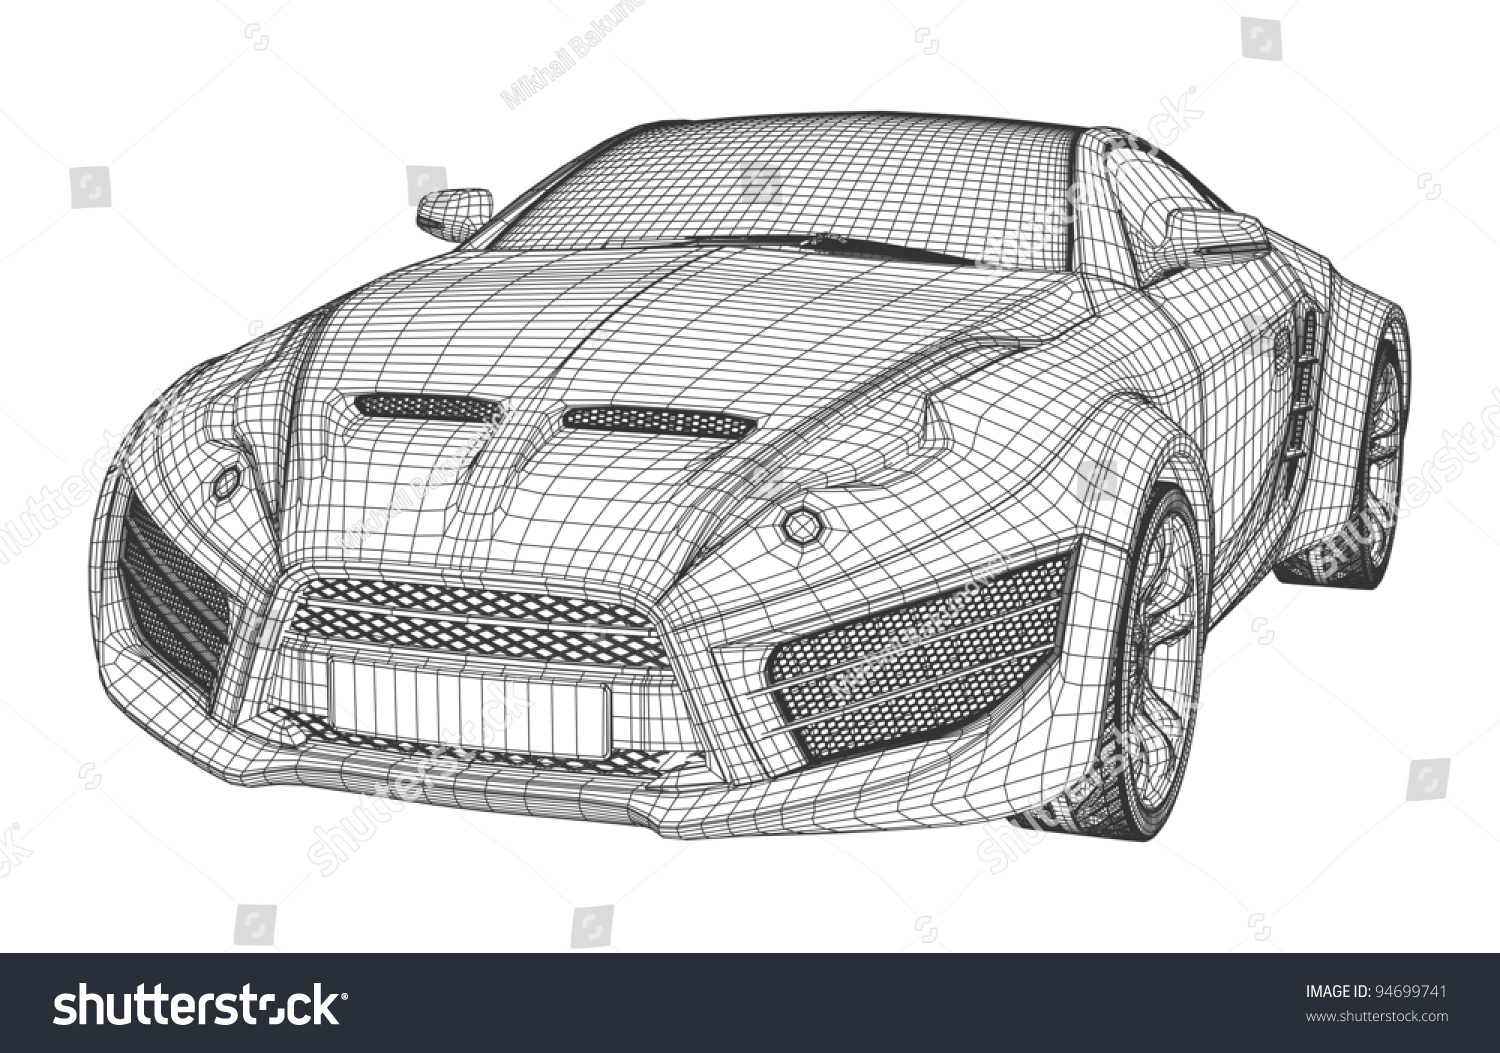 Sports car blueprint non branded concept vectores en stock 94699741 sports car blueprint non branded concept vectores en stock 94699741 shutterstock malvernweather Images